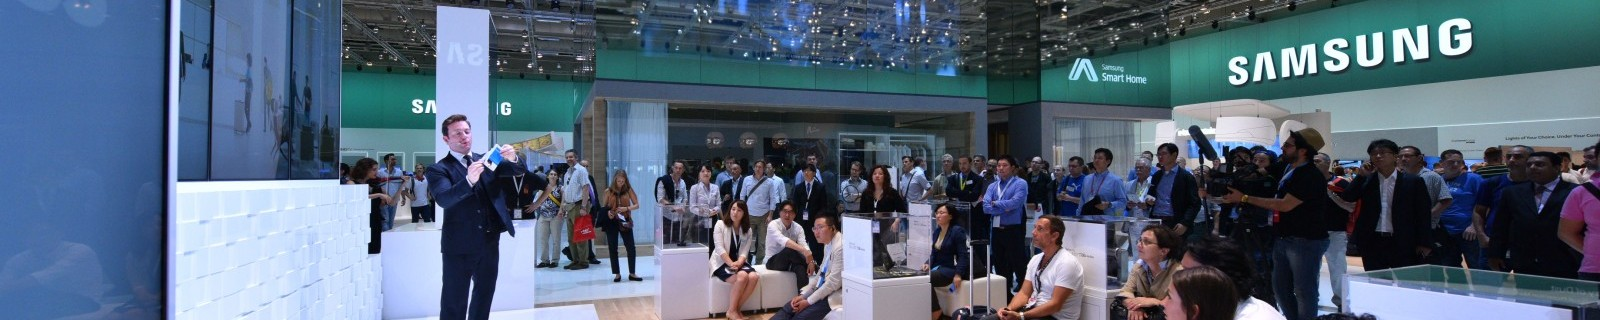 SAMSUNG EXHIBITION STAND AT IFA IN BERLIN